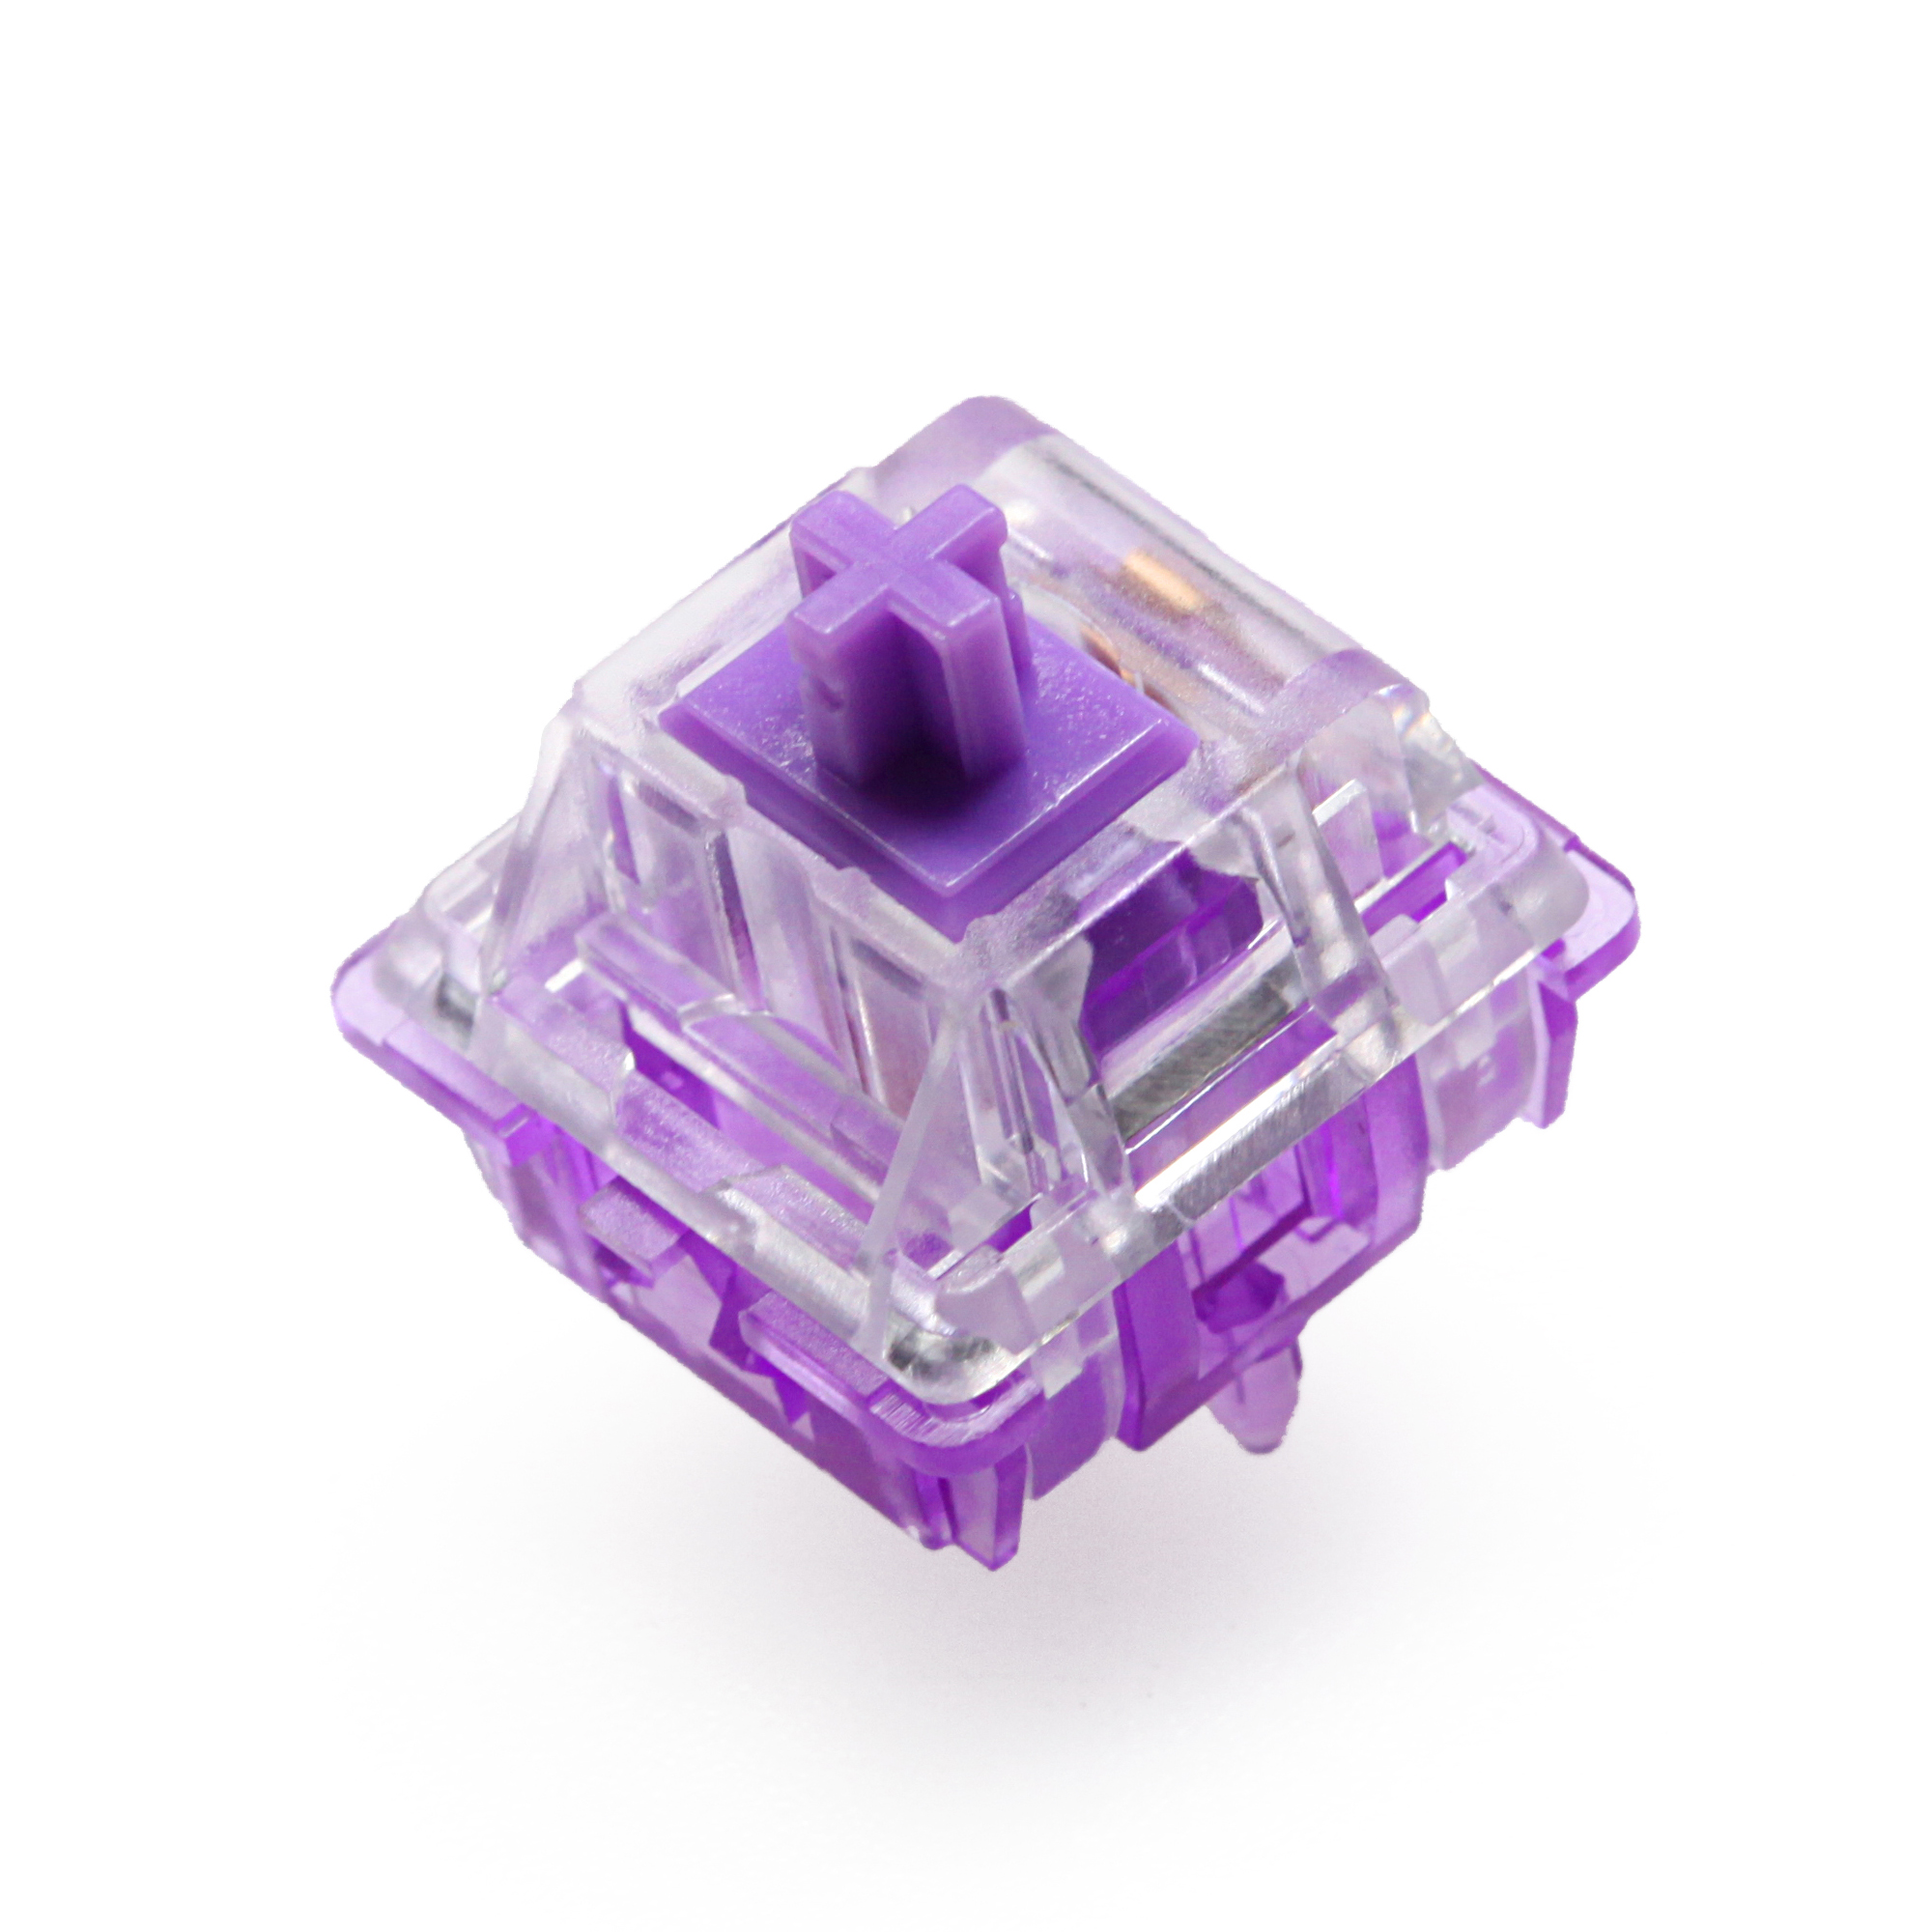 EVERGLIDE SWITCH Crystal Purple Mx Stem With Purple Mx Stem For Mechanical Keyboard 5pin 45g Tactile Similar To Holy Panda